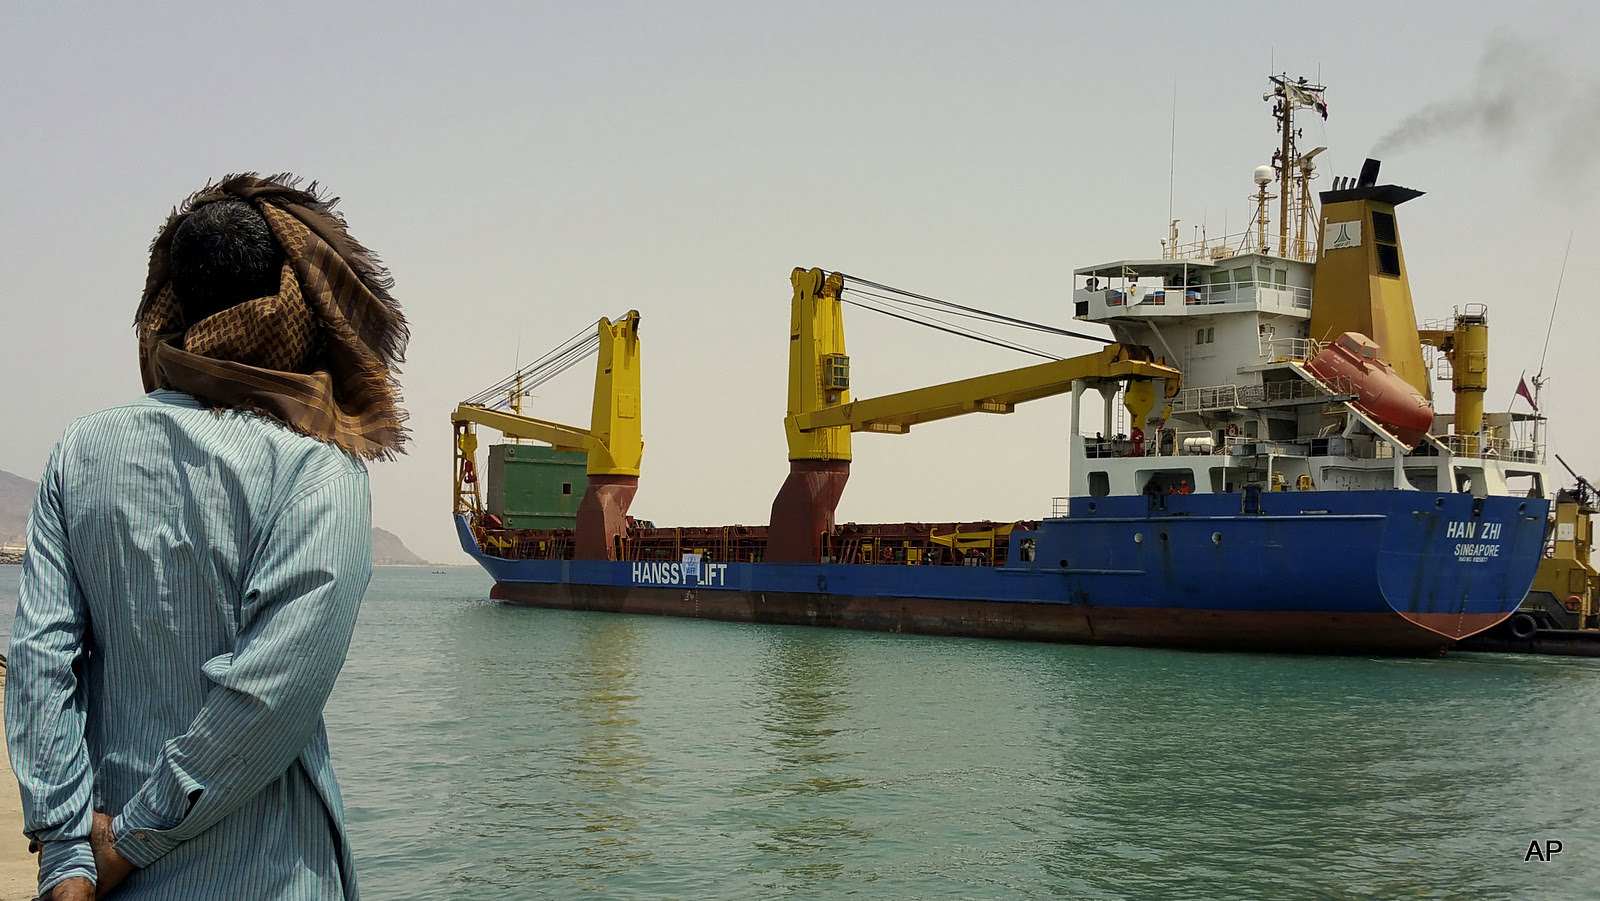 A Yemeni man looks at a World Food Program ship at the port of Aden, Yemen